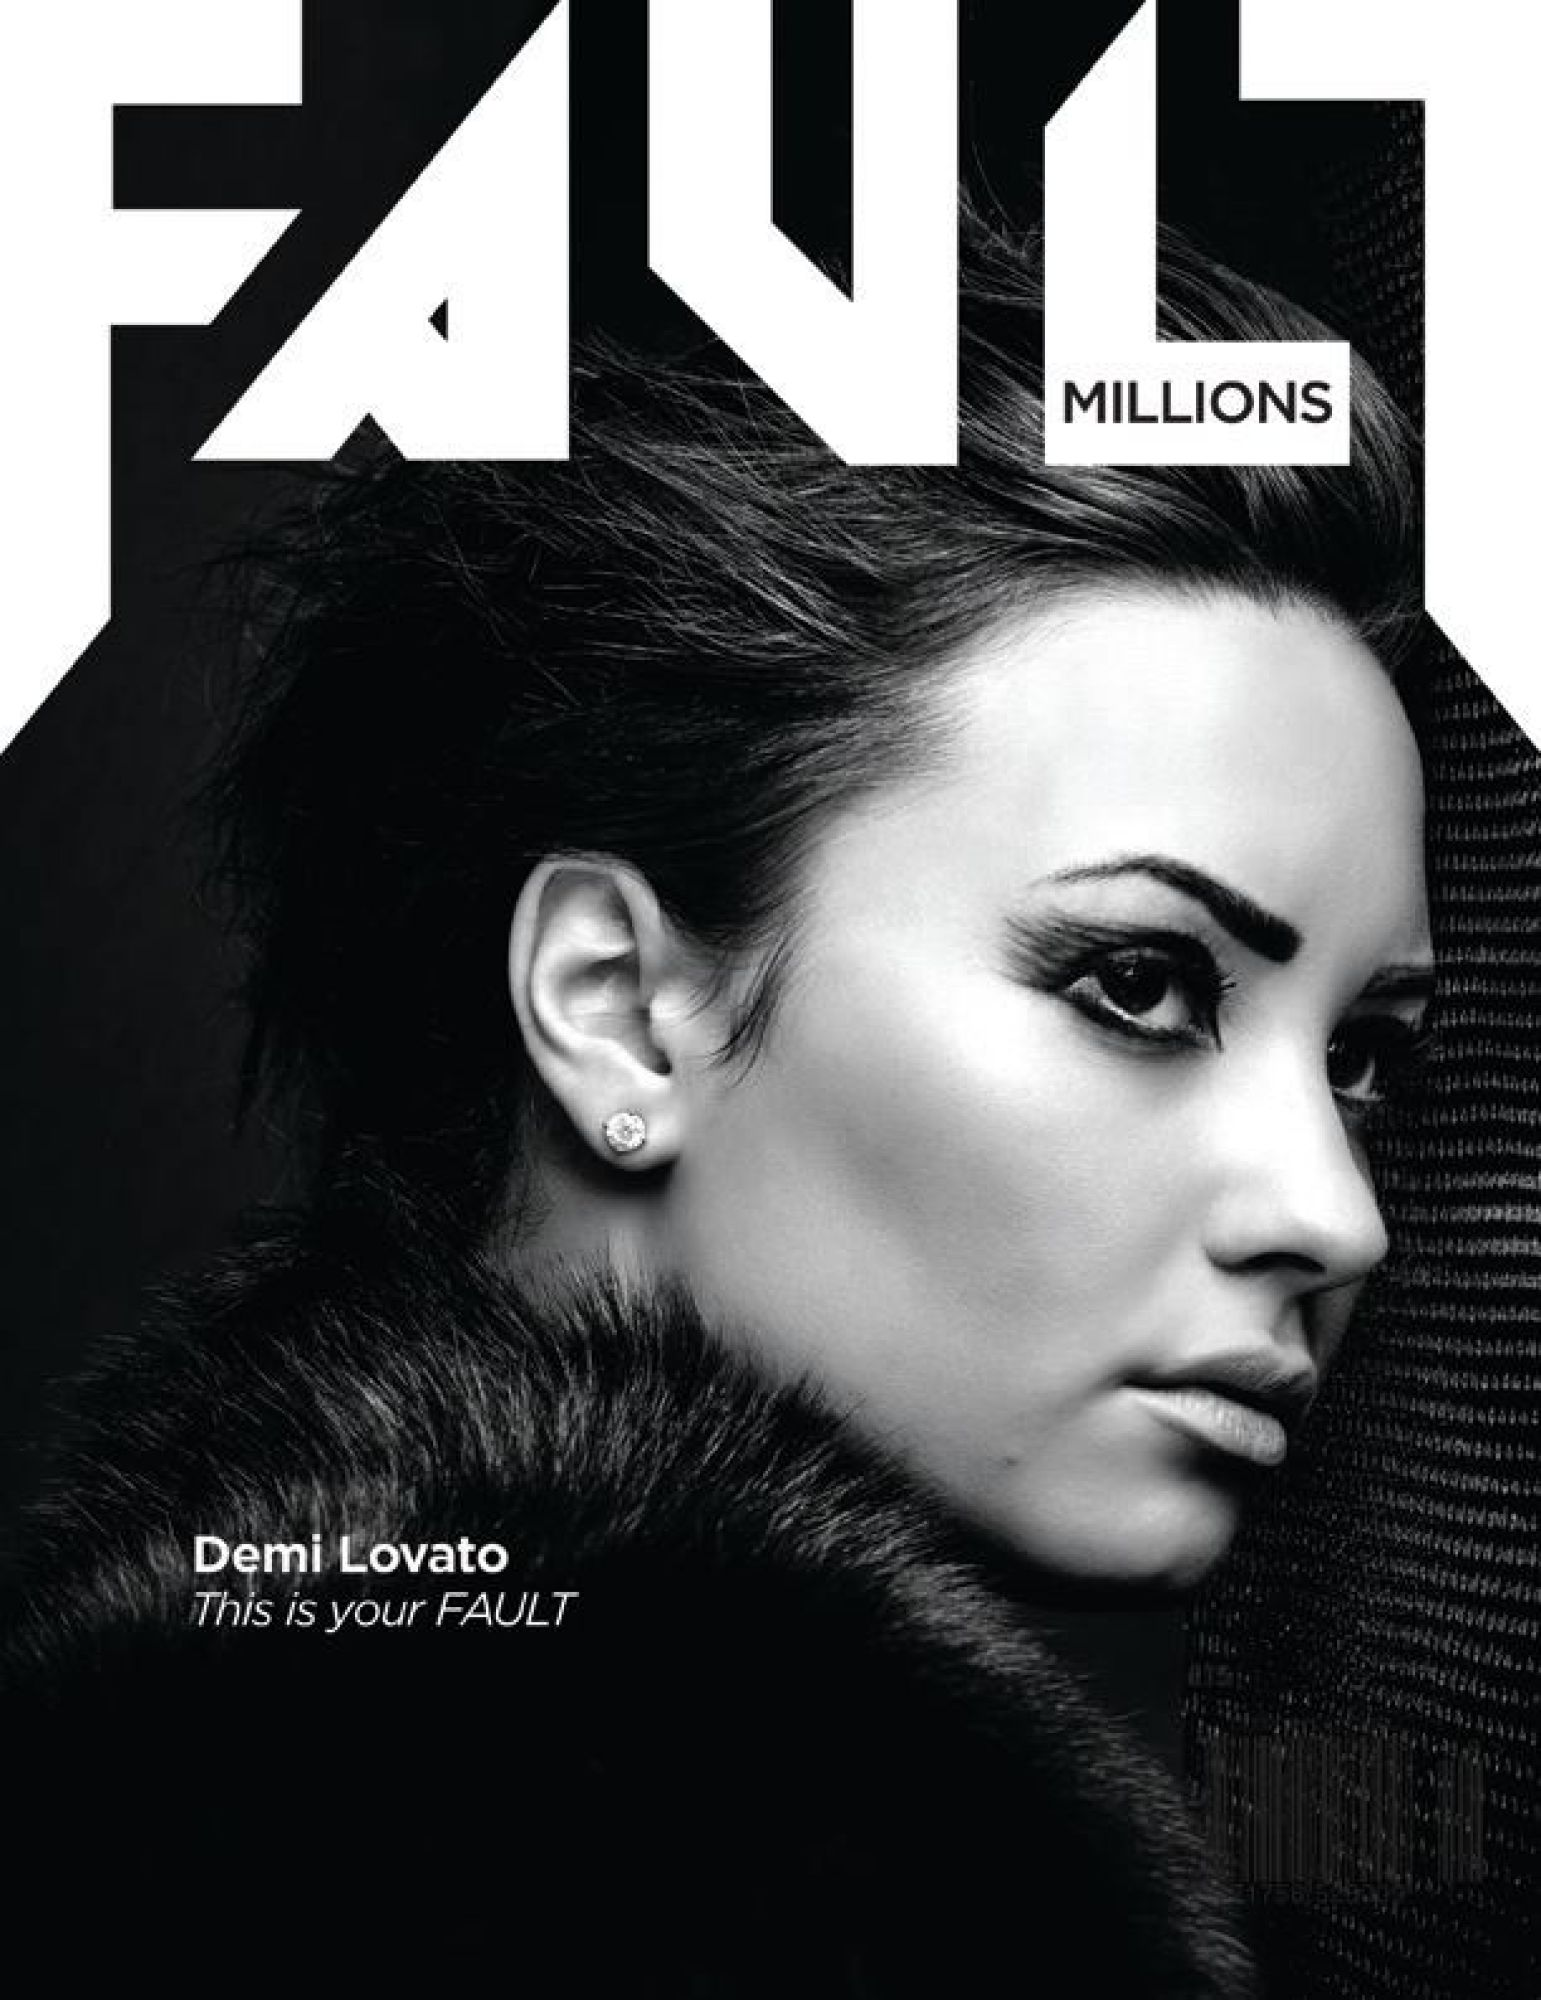 Demi Lovato Covers for Fault Magazine